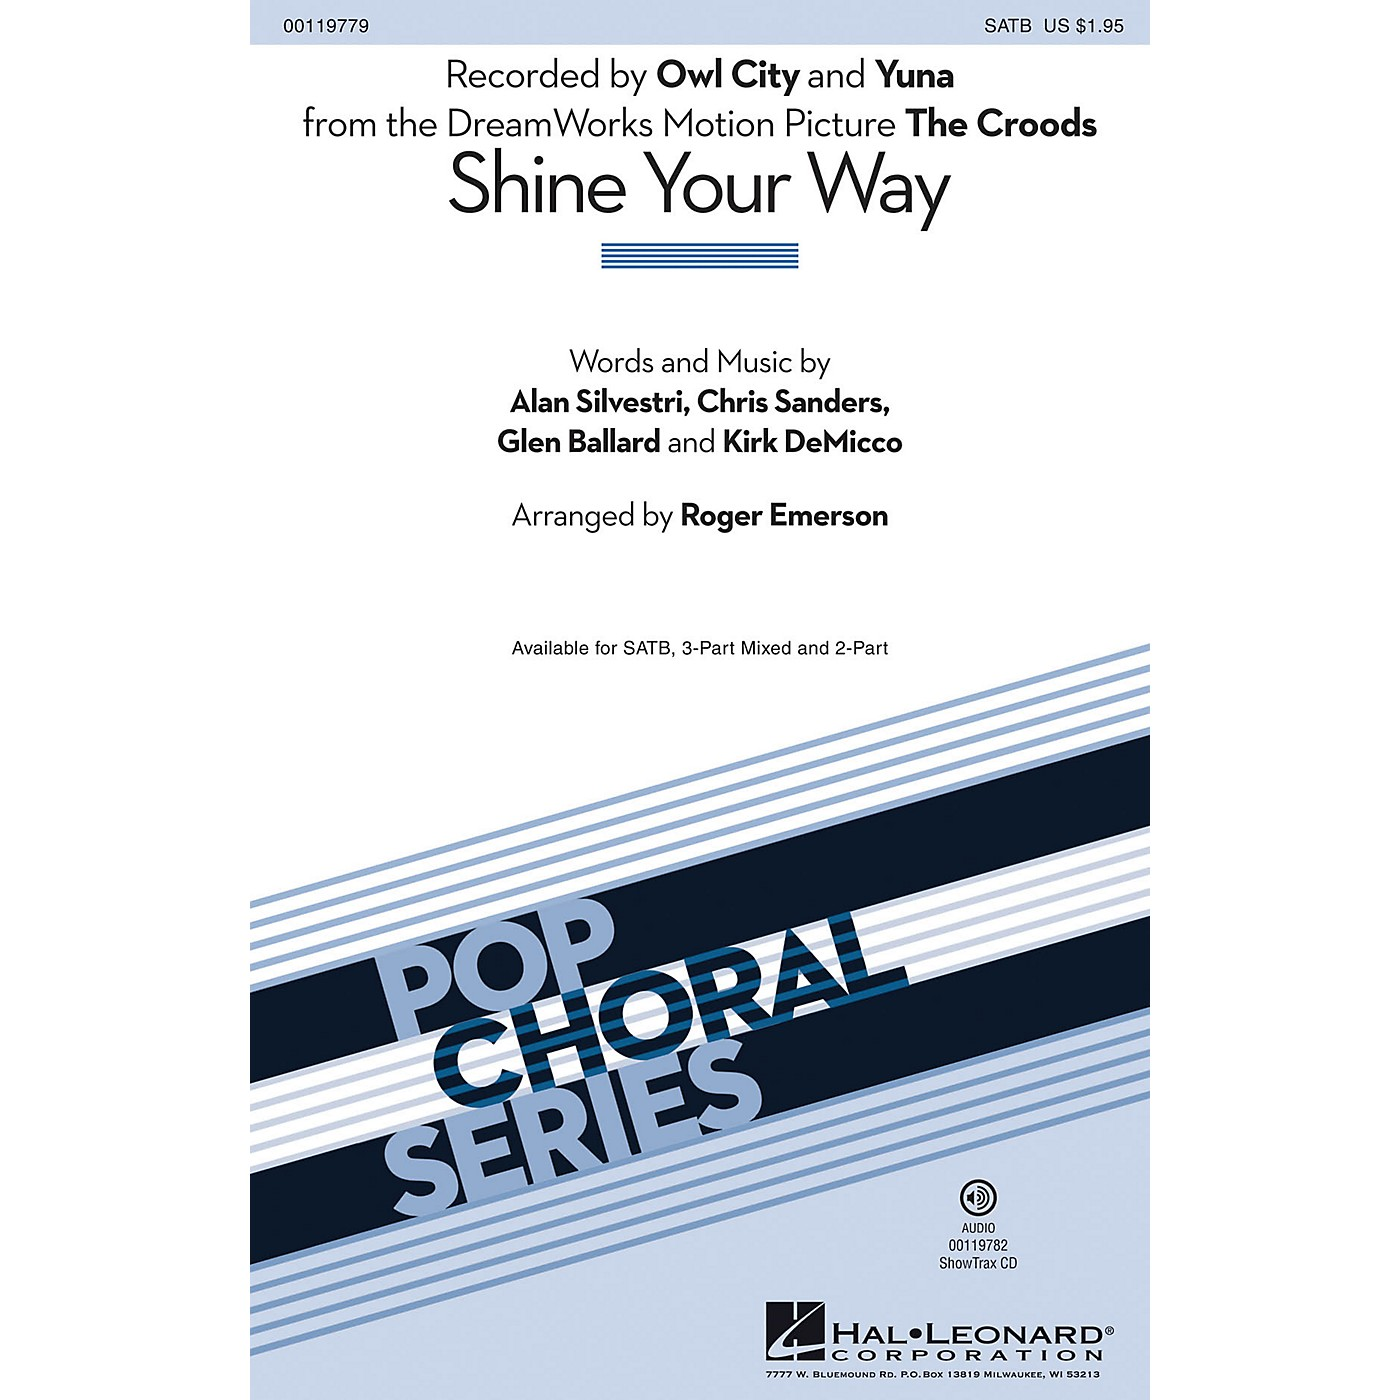 Hal Leonard Shine Your Way (from The Croods) (SATB) SATB by Owl City arranged by Roger Emerson thumbnail